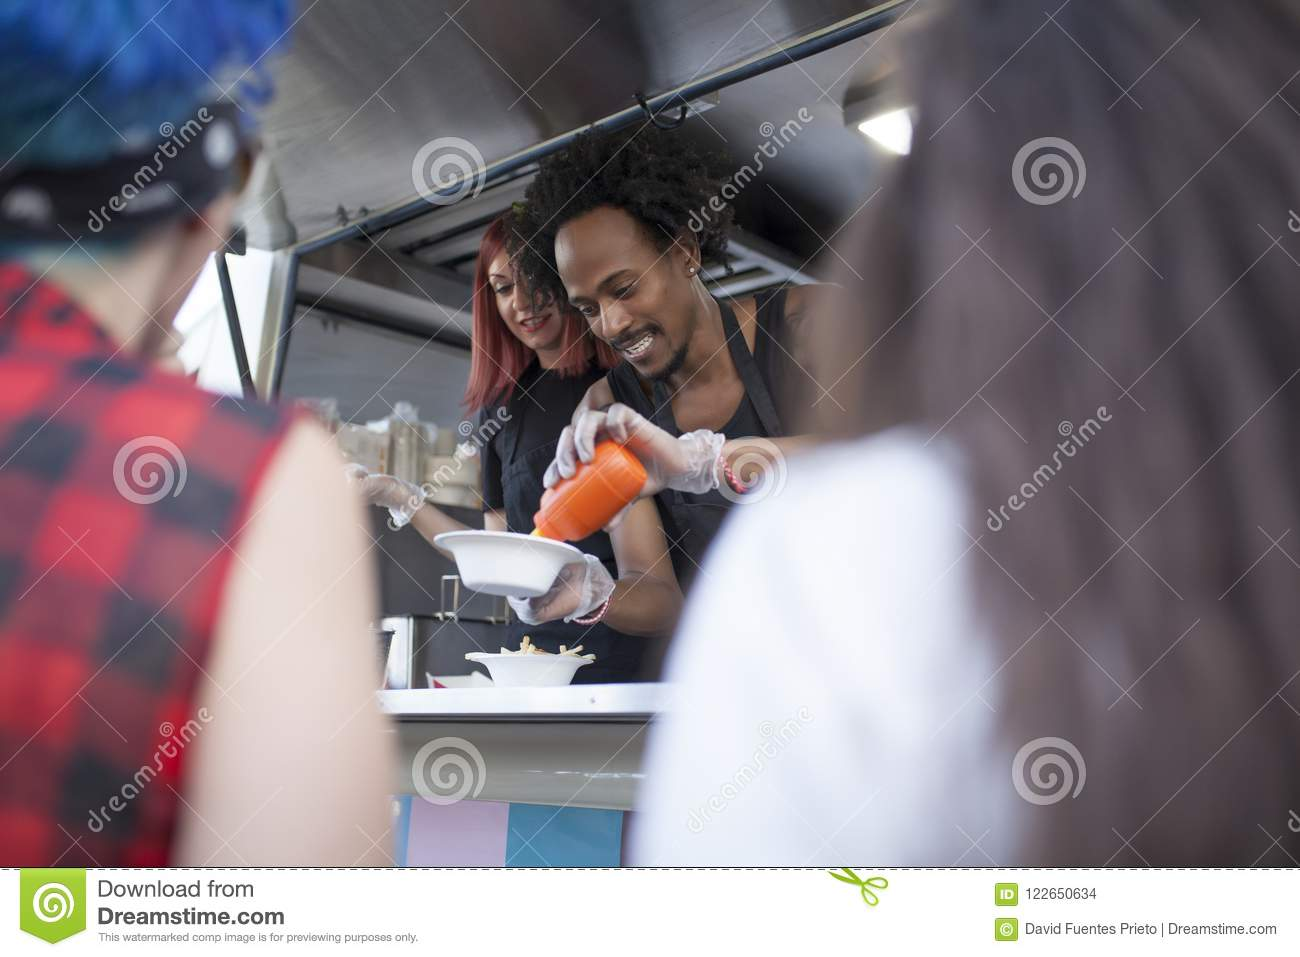 Two people works in a Food truck